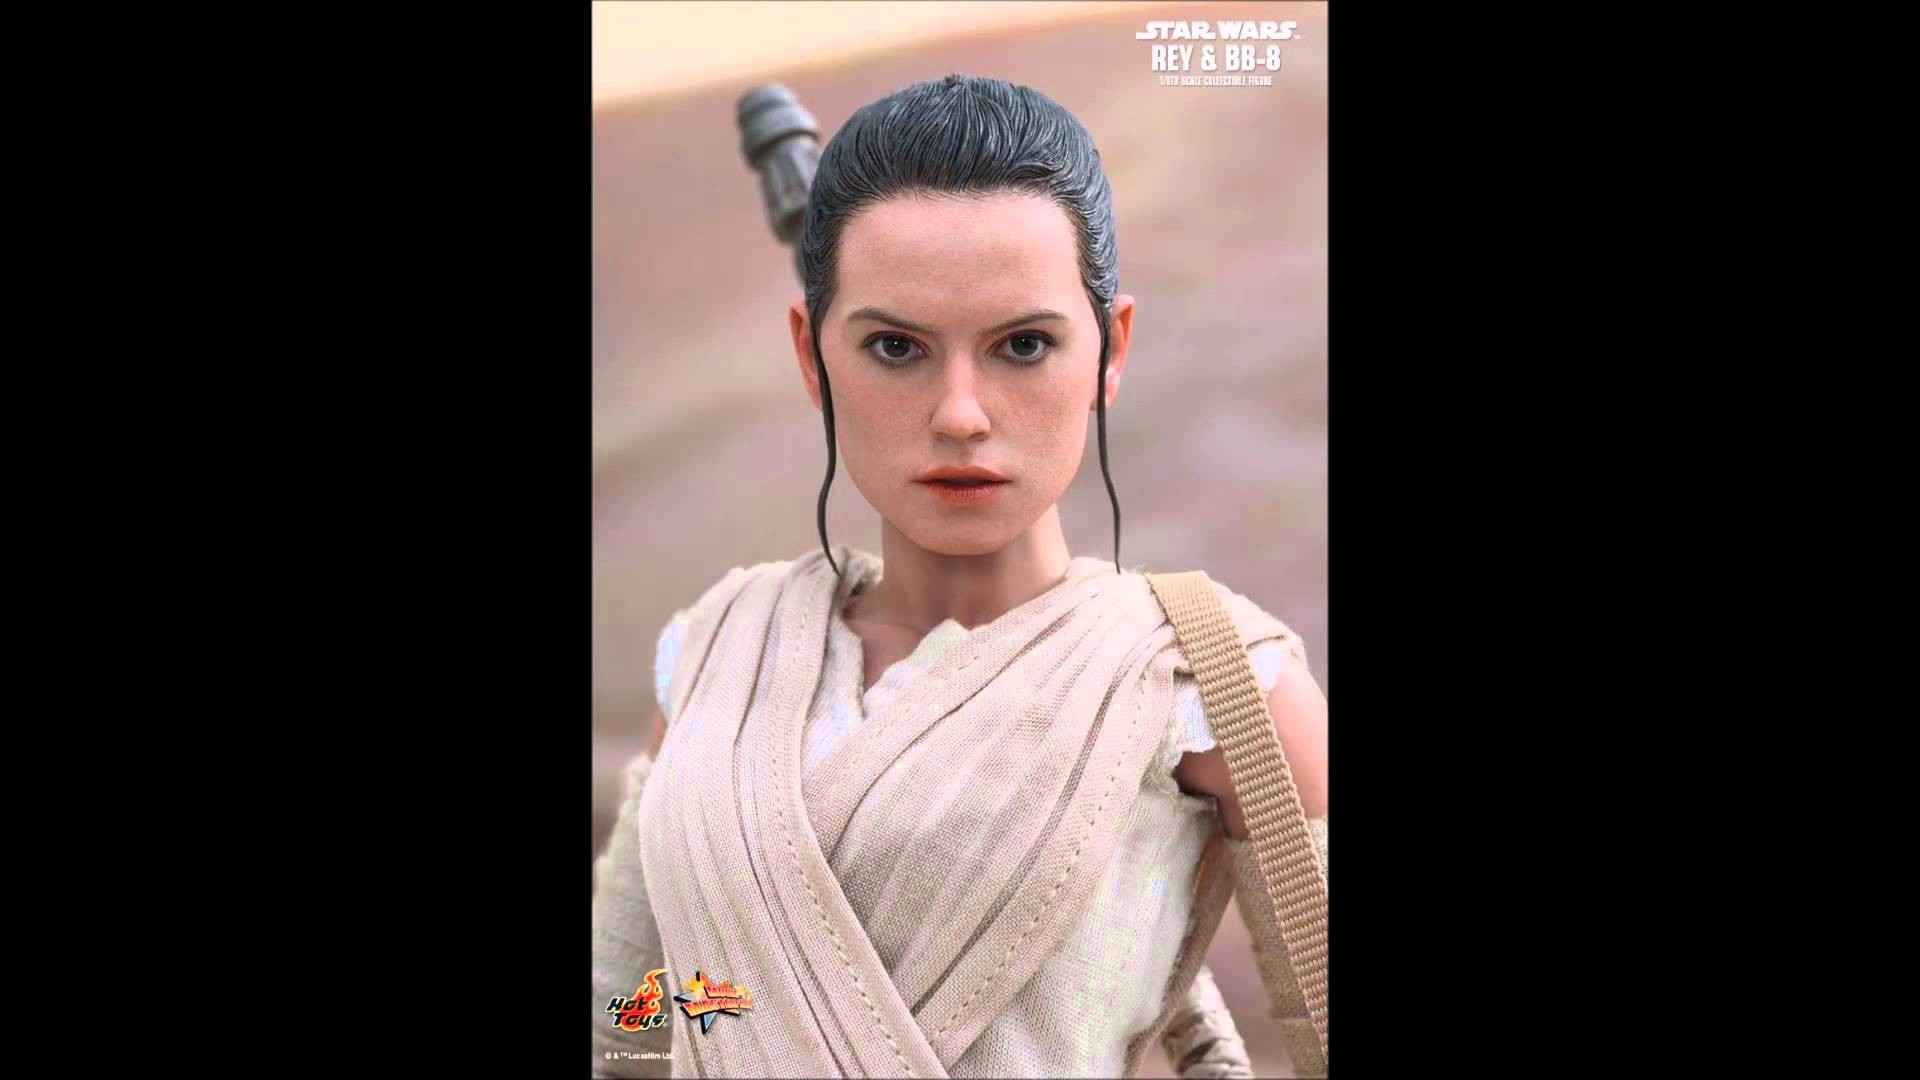 Daisy Ridley Star Wars Wallpaper: Daisy Ridley Wallpapers (73+ Images